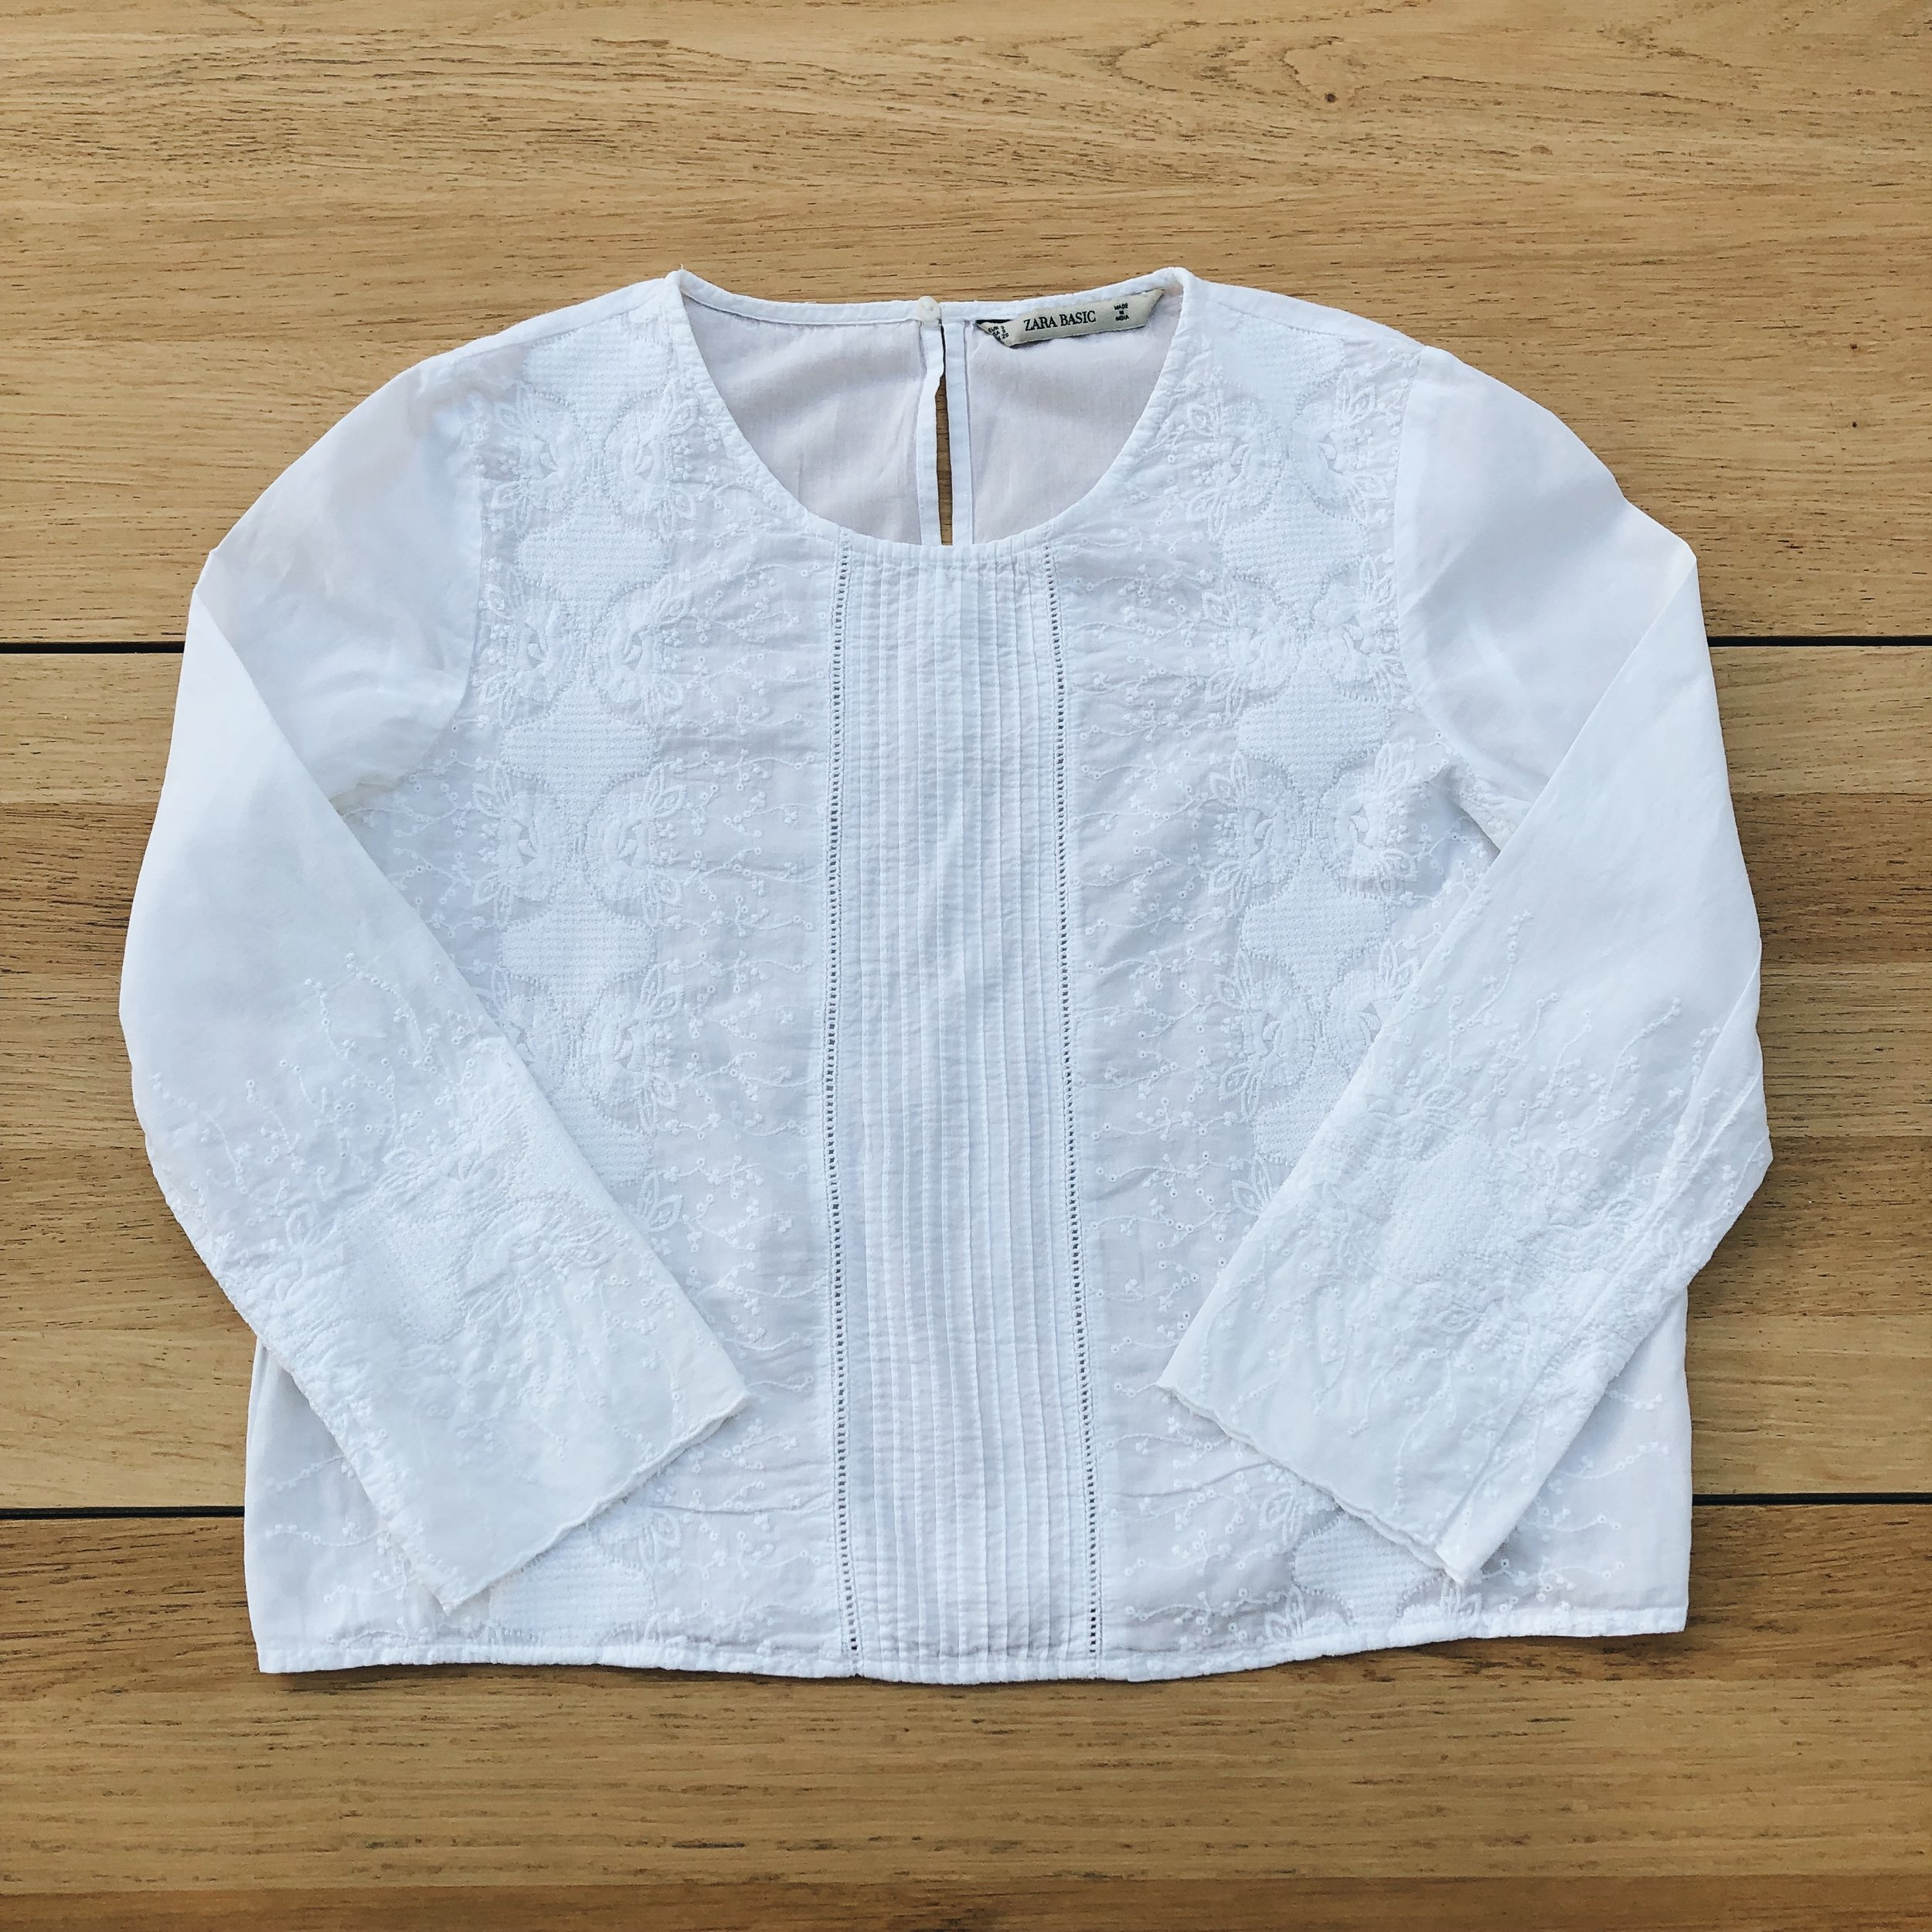 The 'boxy' fit of my Zara blouse